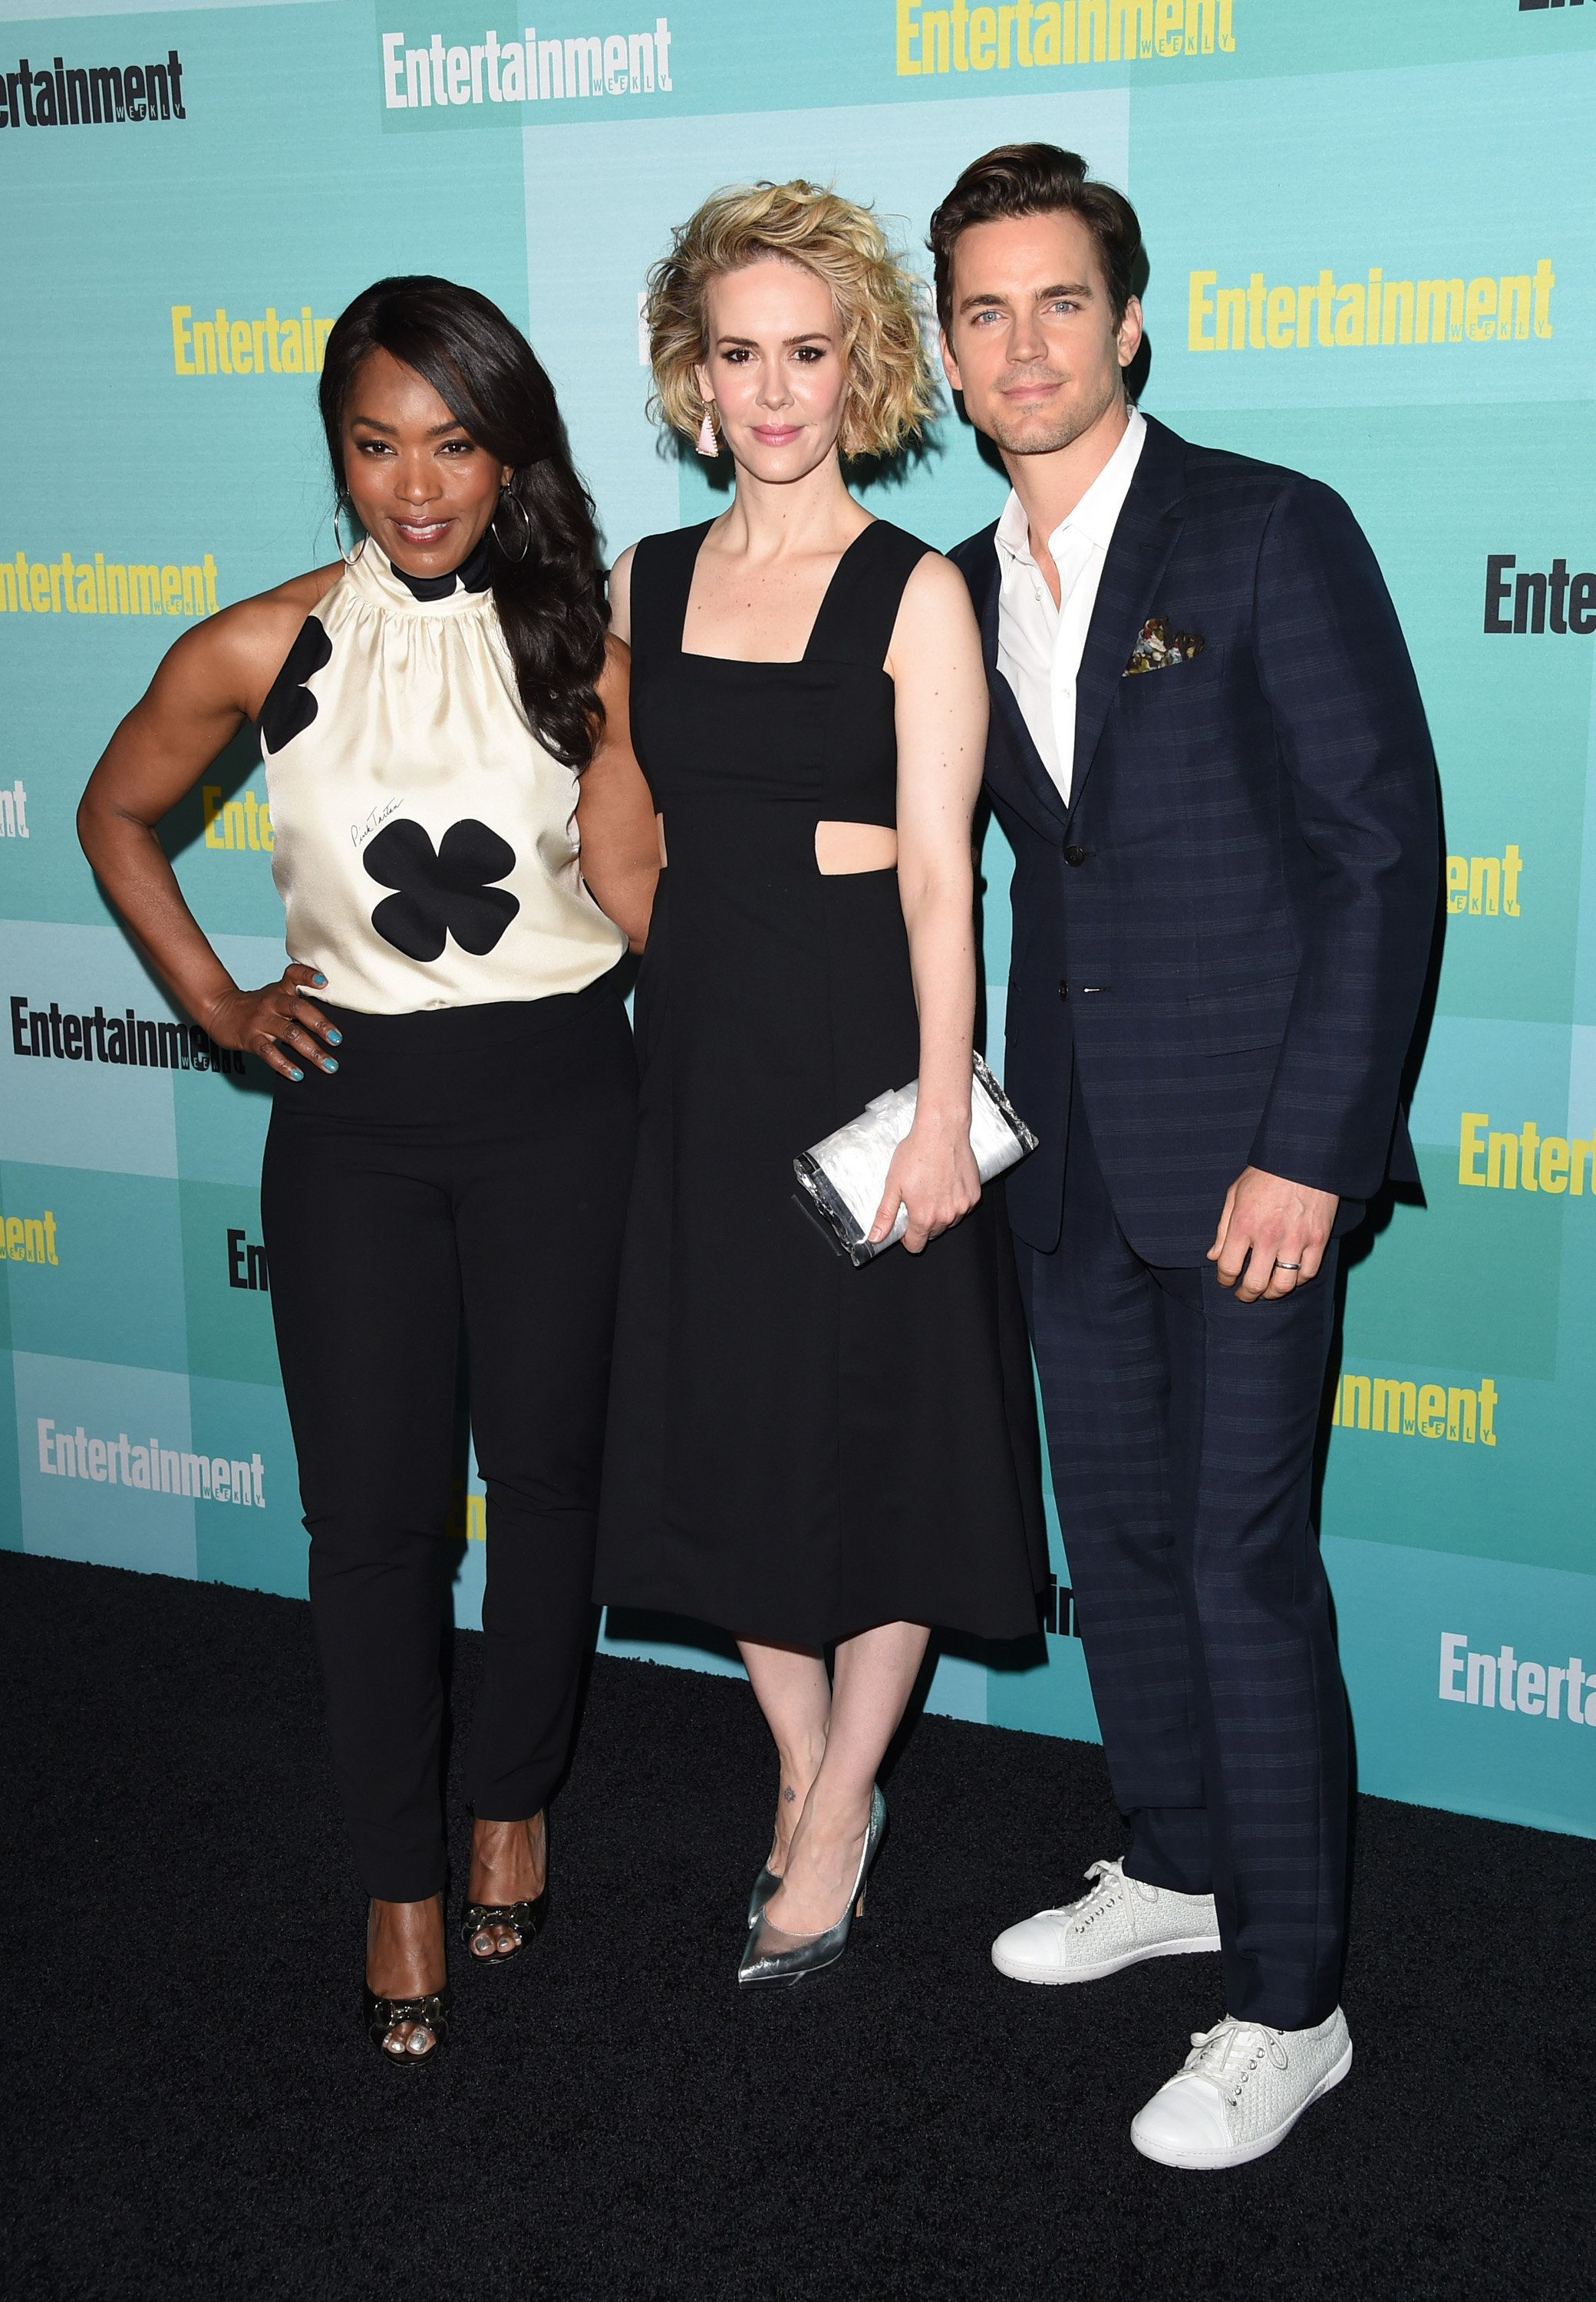 SAN DIEGO, CA - JULY 11:  (L-R) Actors Angela Bassett, Sarah Paulson and Matt Bomer attend Entertainment Weekly's Comic-Con 2015 Party sponsored by HBO, Honda, Bud Light Lime and Bud Light Ritas at FLOAT at The Hard Rock Hotel on July 11, 2015 in San Diego, California.  (Photo by Jason Merritt/Getty Images for Entertainment Weekly)